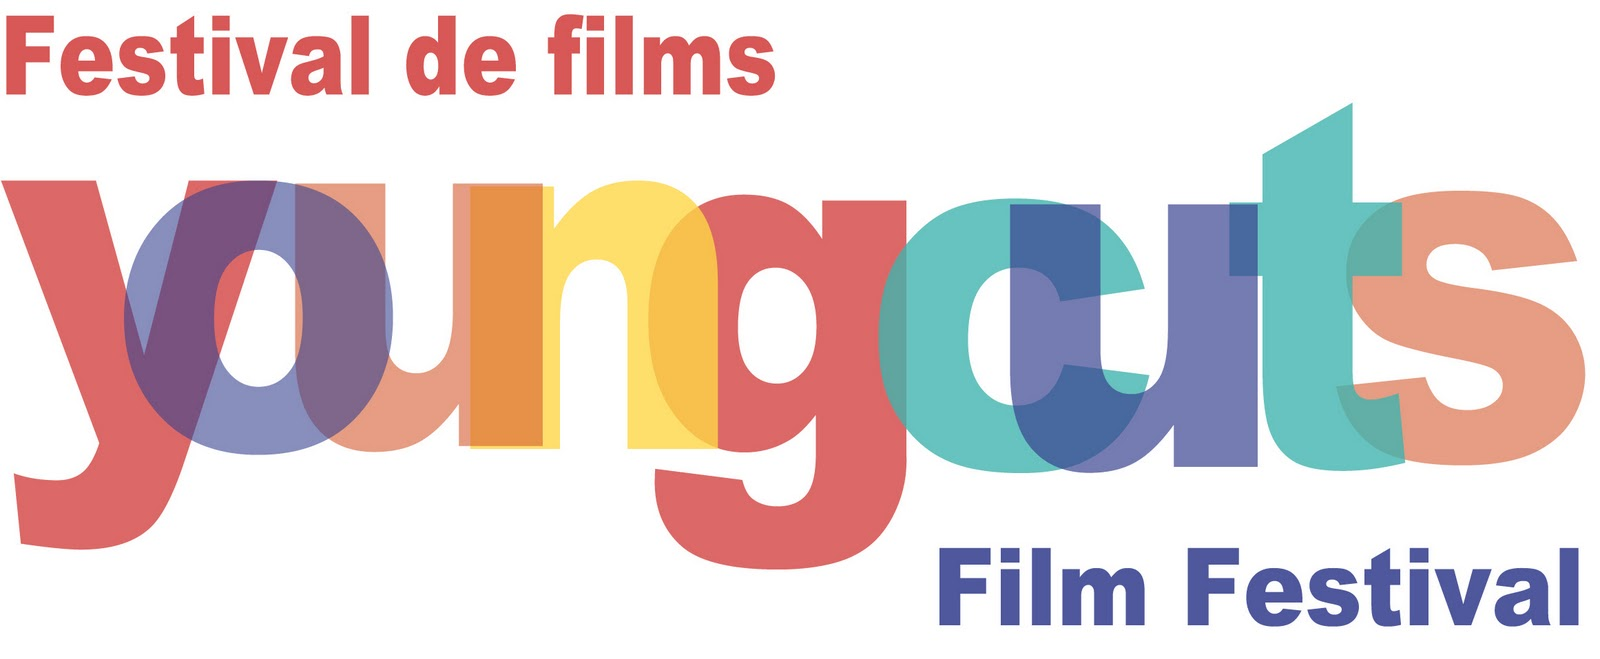 LA Production Company Tiger House Films Agent 6 Youngcuts Film Fest Logo